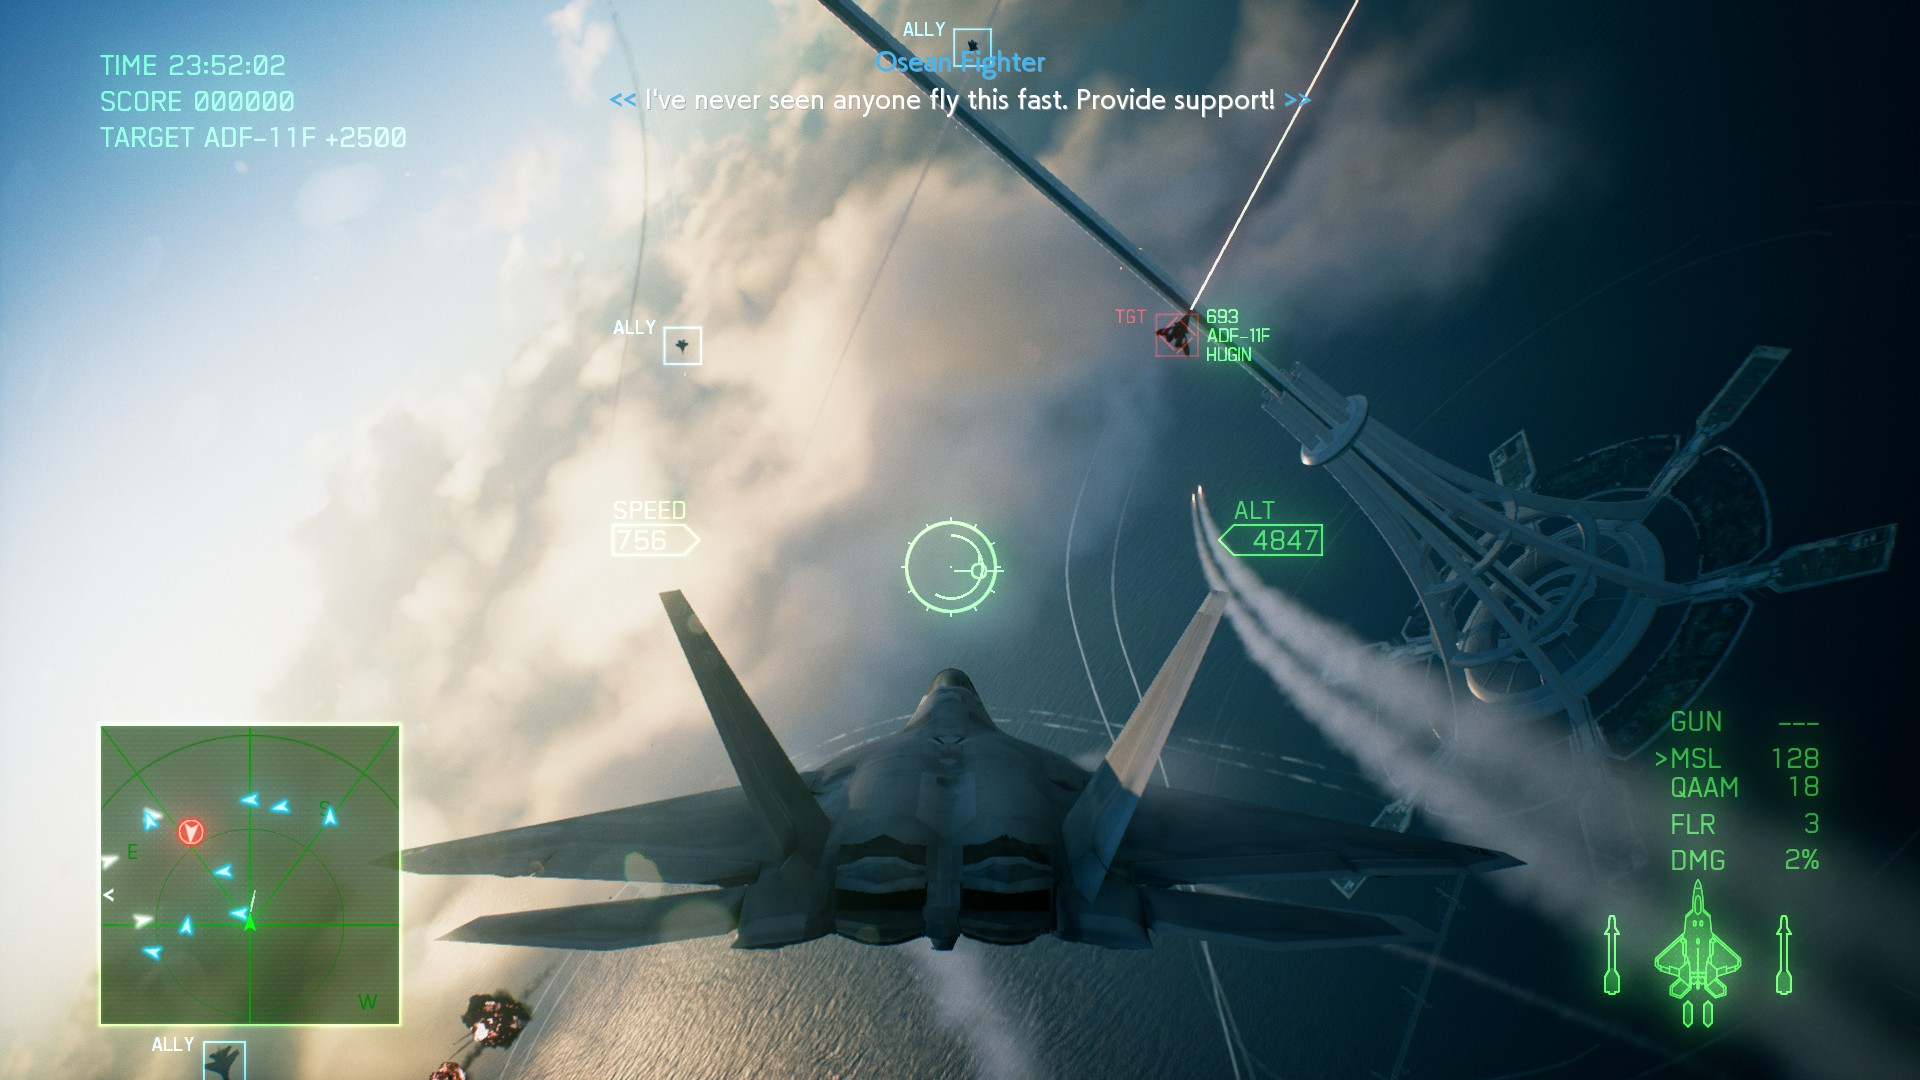 Ace Combat 7 Skies Unknown Final Review And Reflection At The Endgame The Infinite Zenith